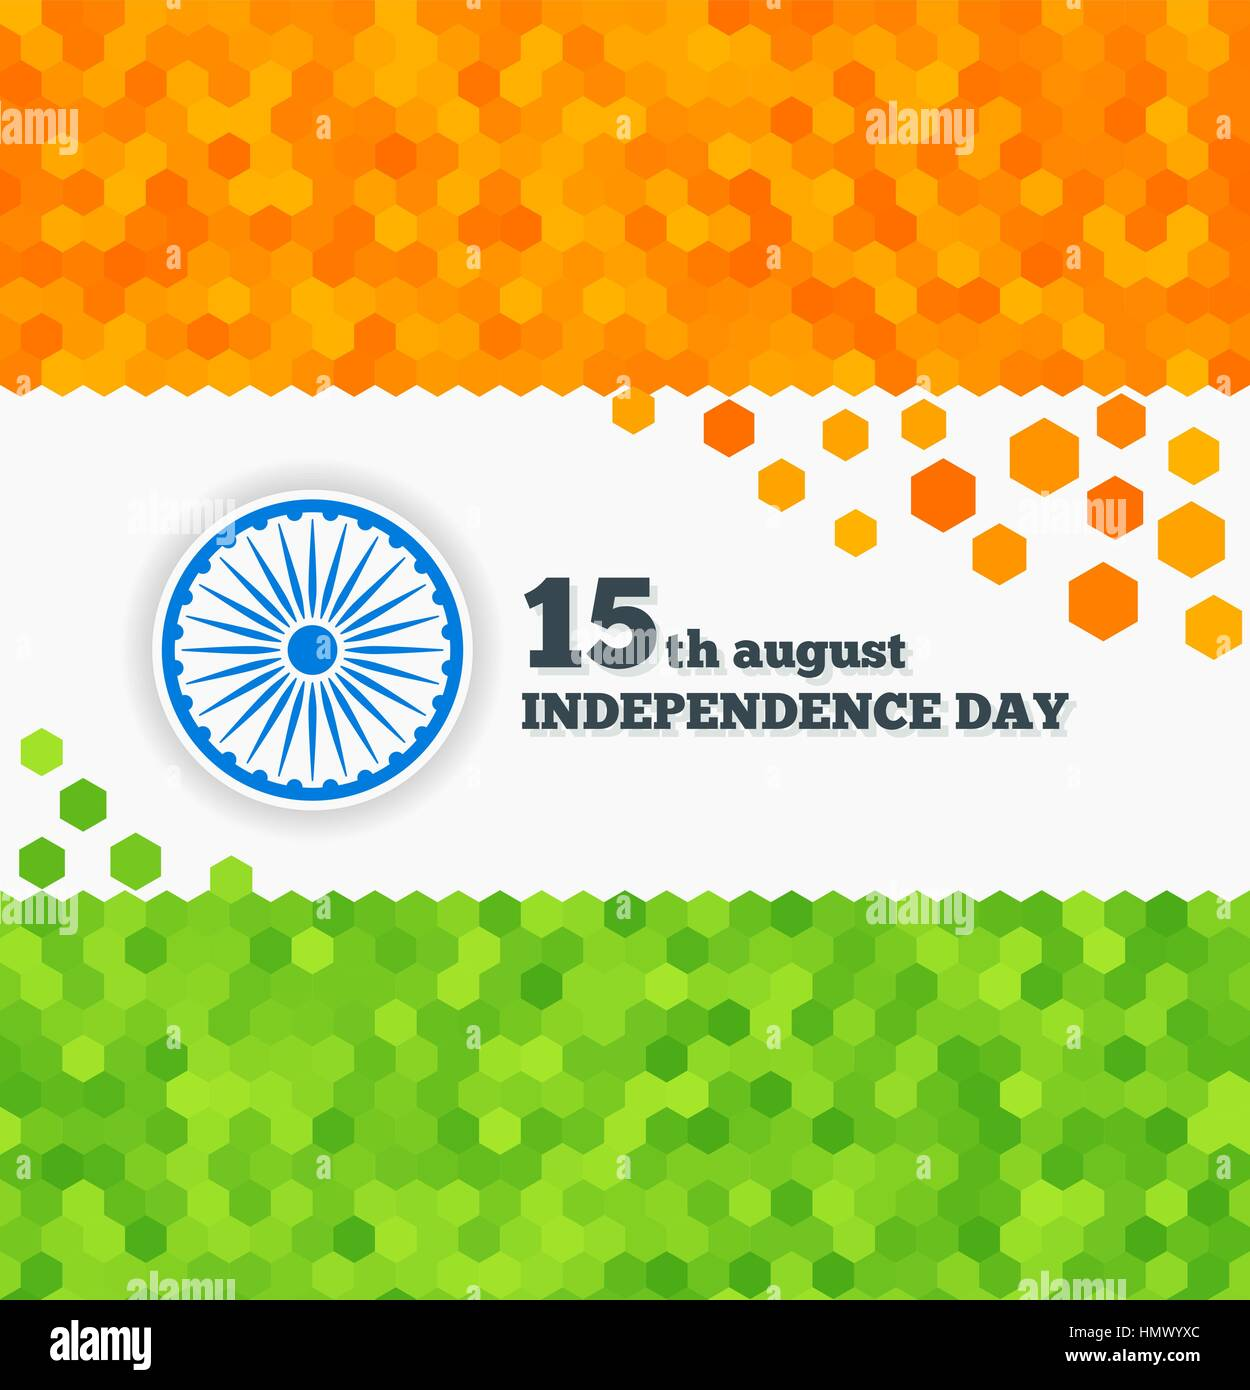 Indian Independence Day banner - Stock Image